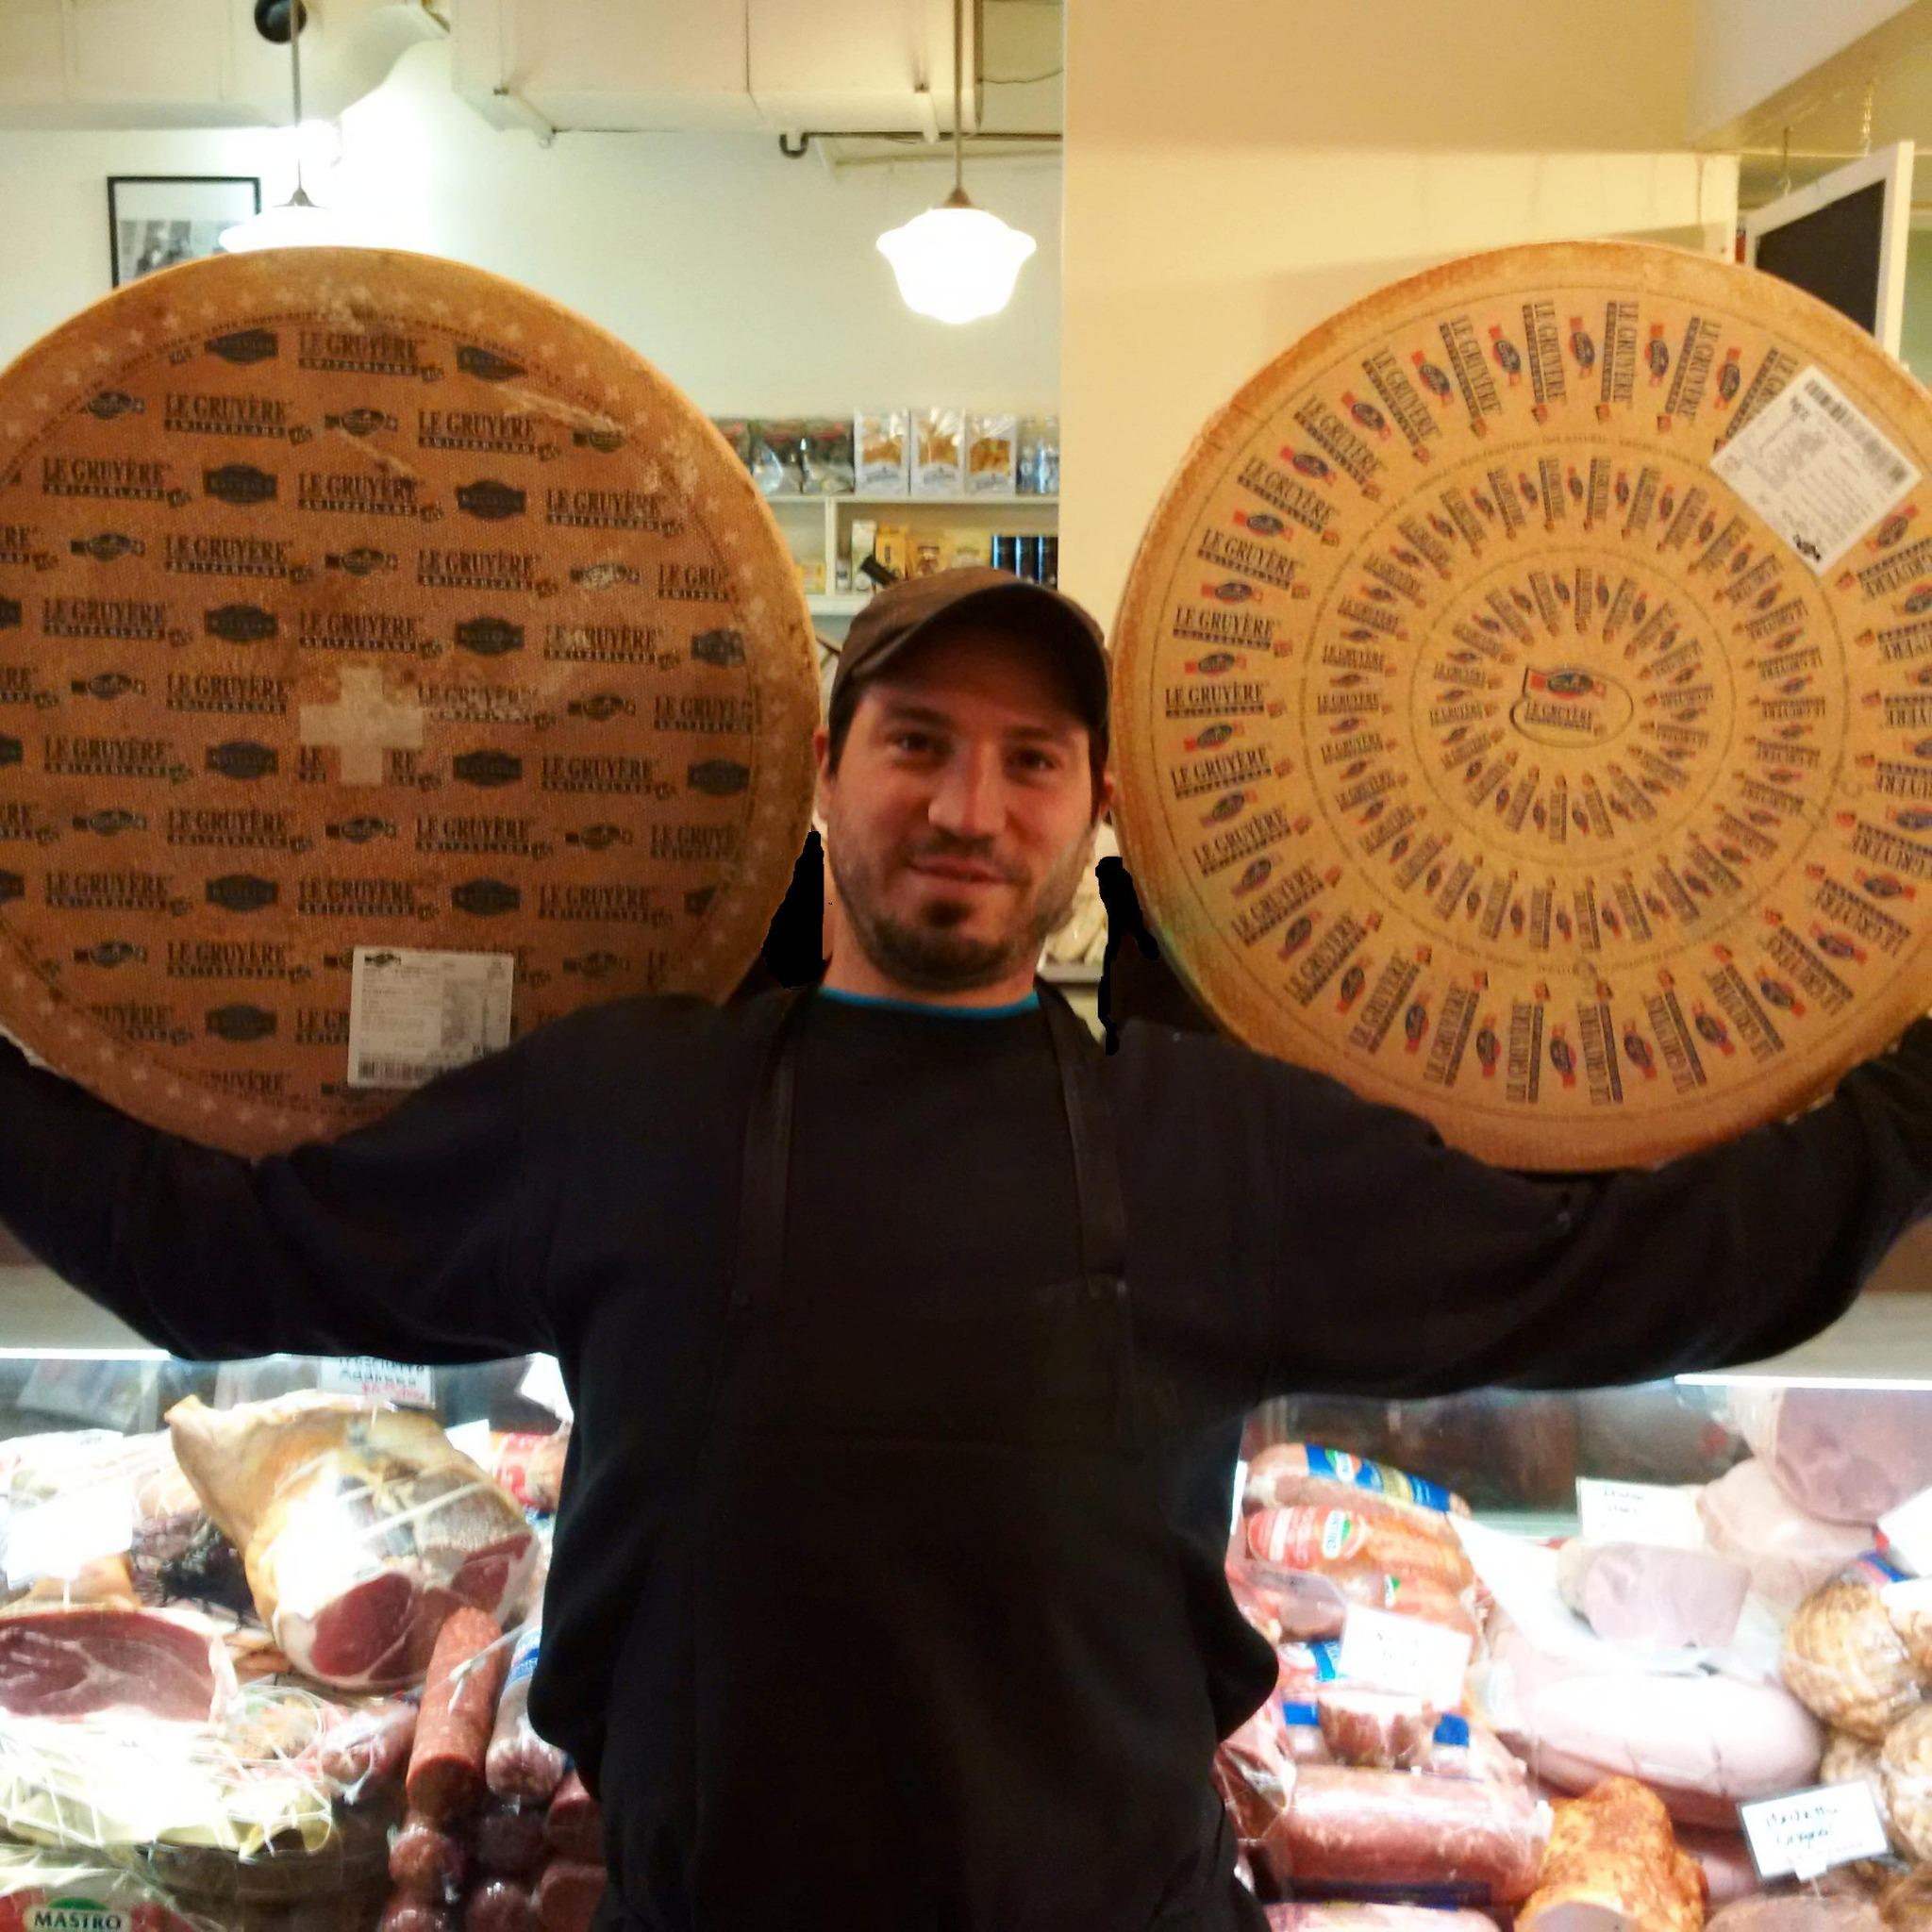 Our cheese monger Micky doing his morning work out! #cheese #ottawa @SwissCheeseMktg http://t.co/zOjjGnH84f